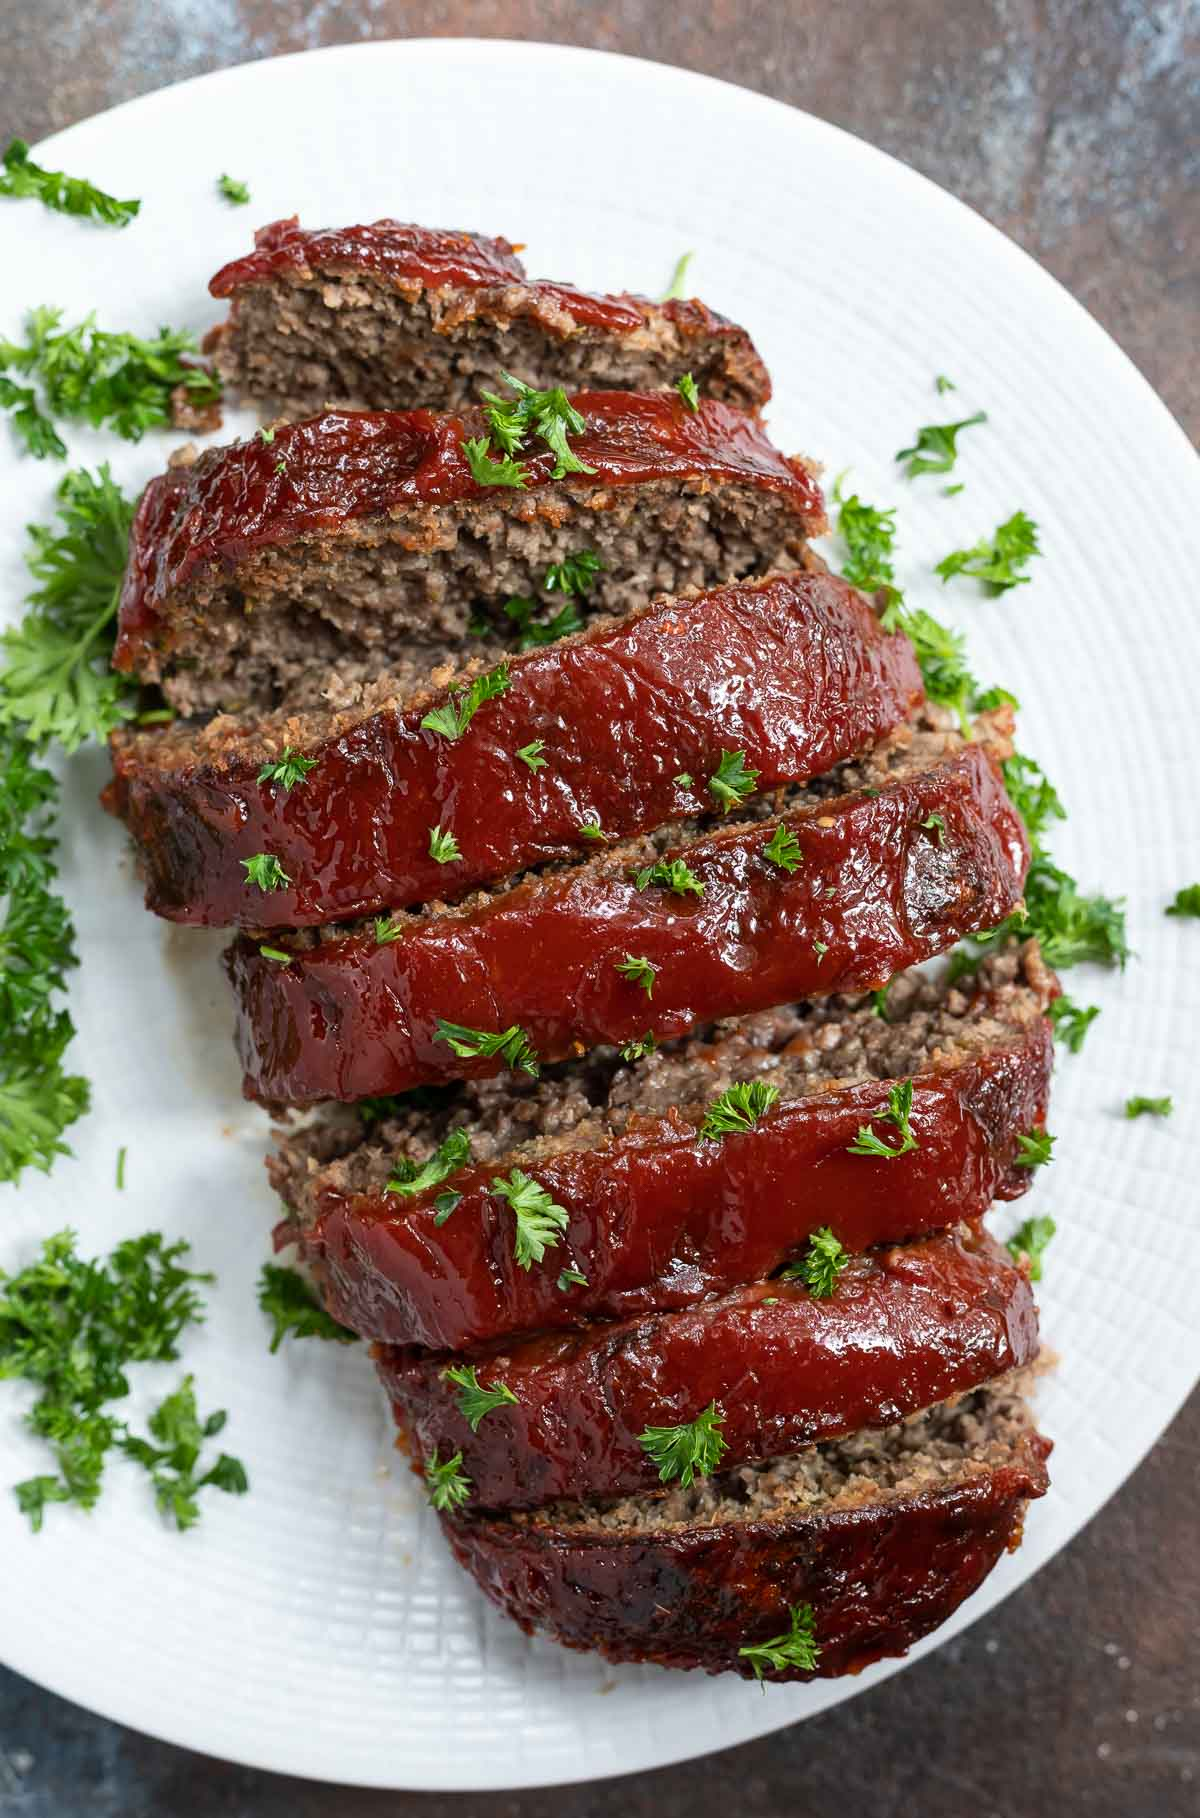 ketchup glazed meatloaf sliced and served on white plate